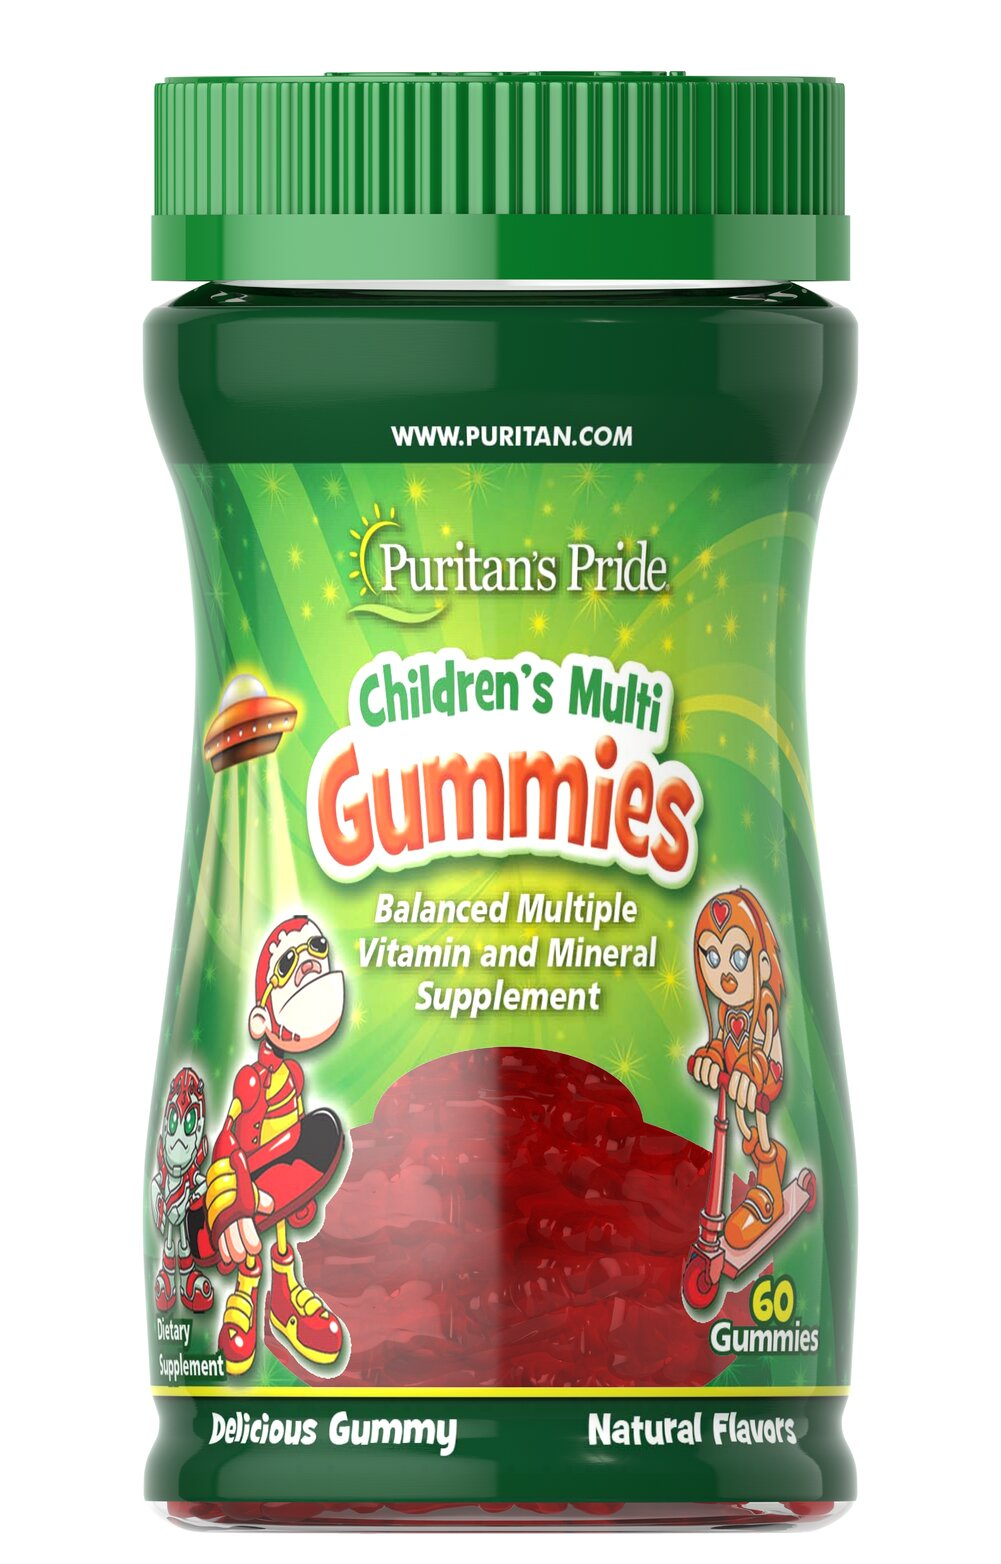 Children's Multivitamins & Minerals Gummies  60 Gummies  $11.99